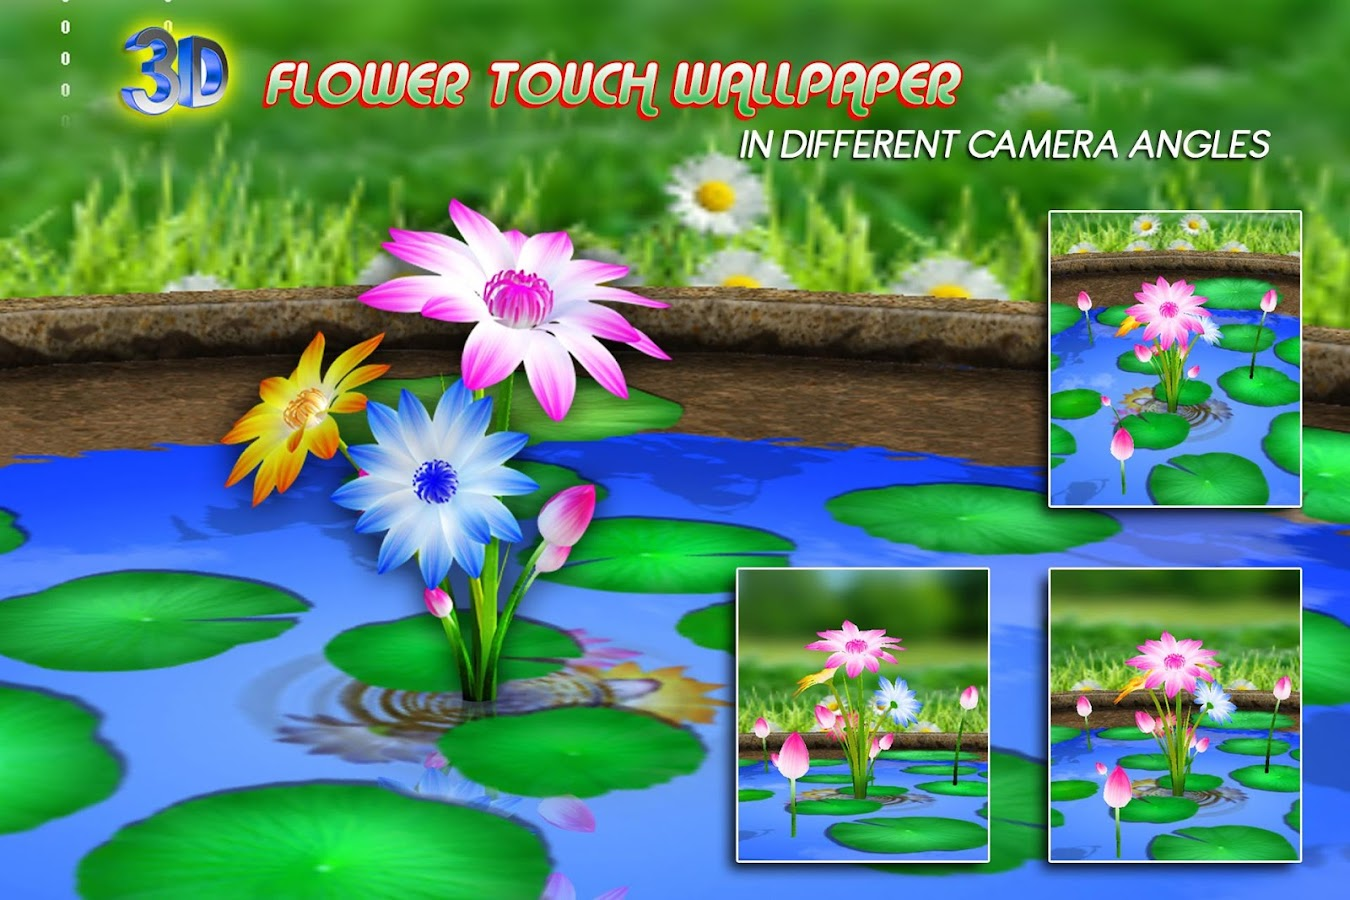 Wallpaper downloader app -  3d Flowers Touch Wallpaper 3 2 Screenshot 9